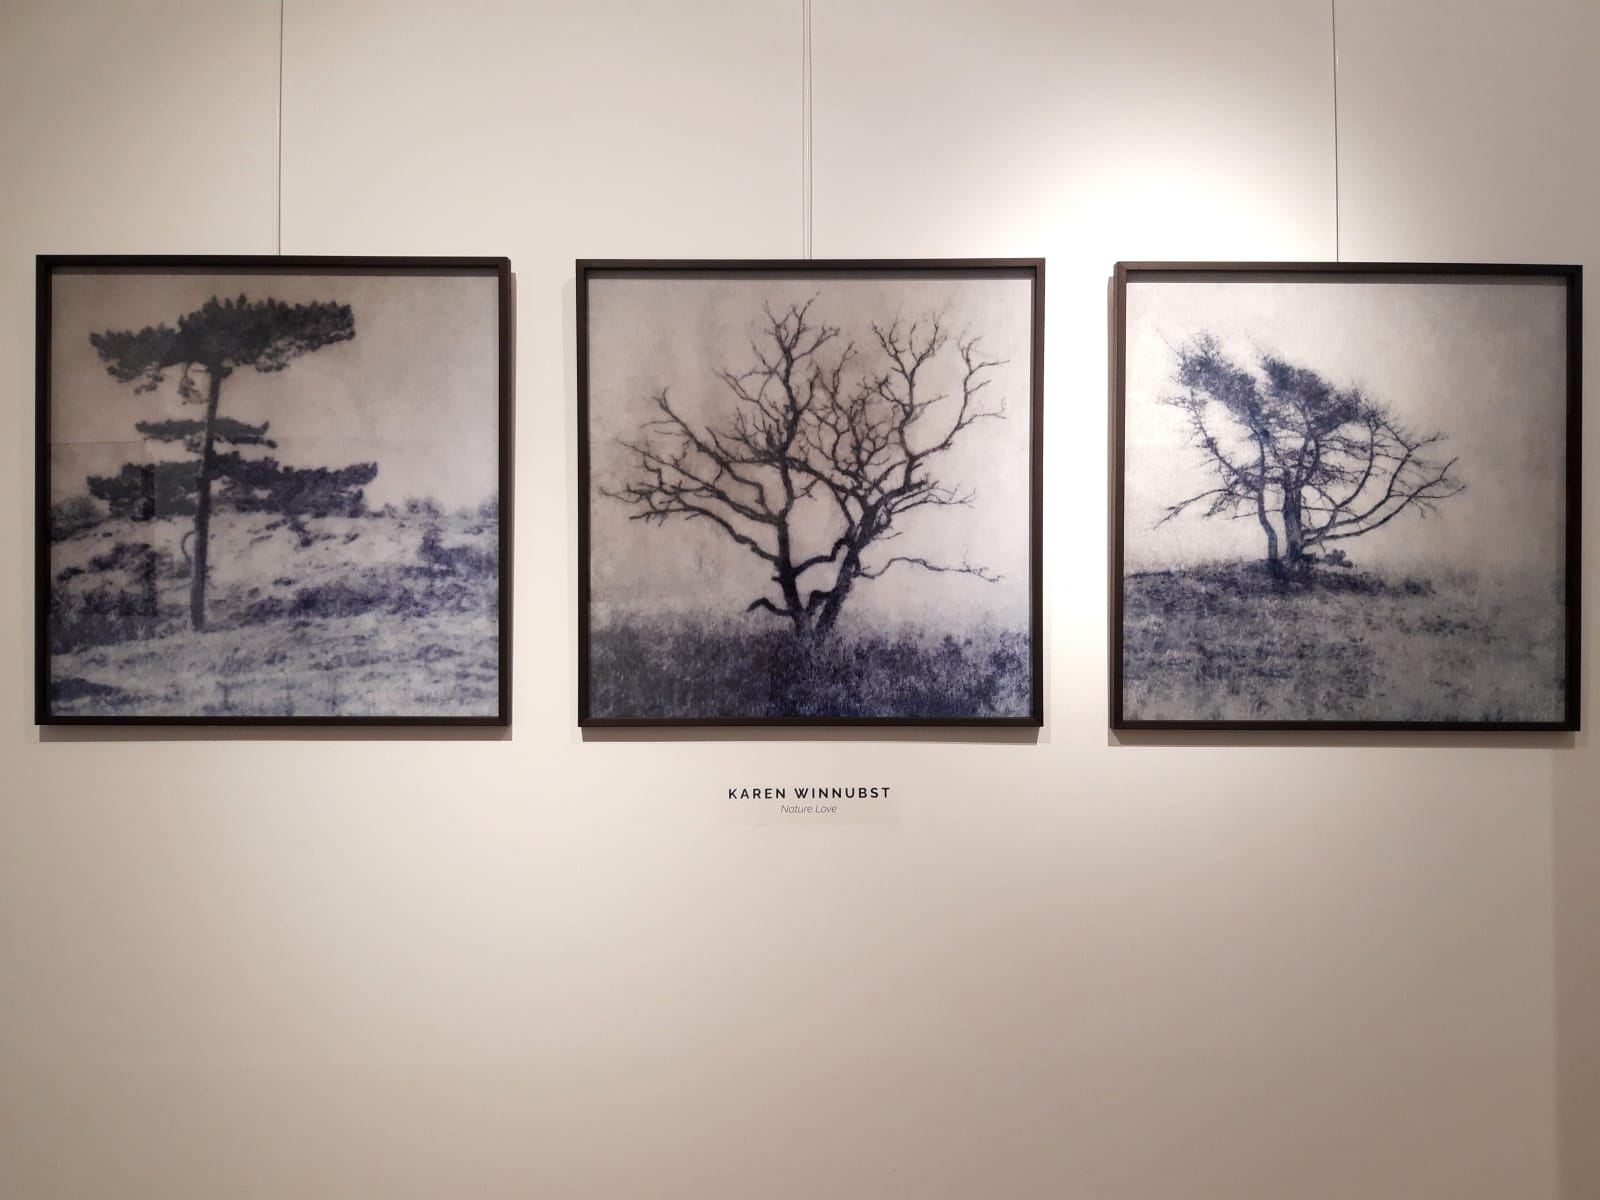 Affordable Art Selection of Photography in Haarlem